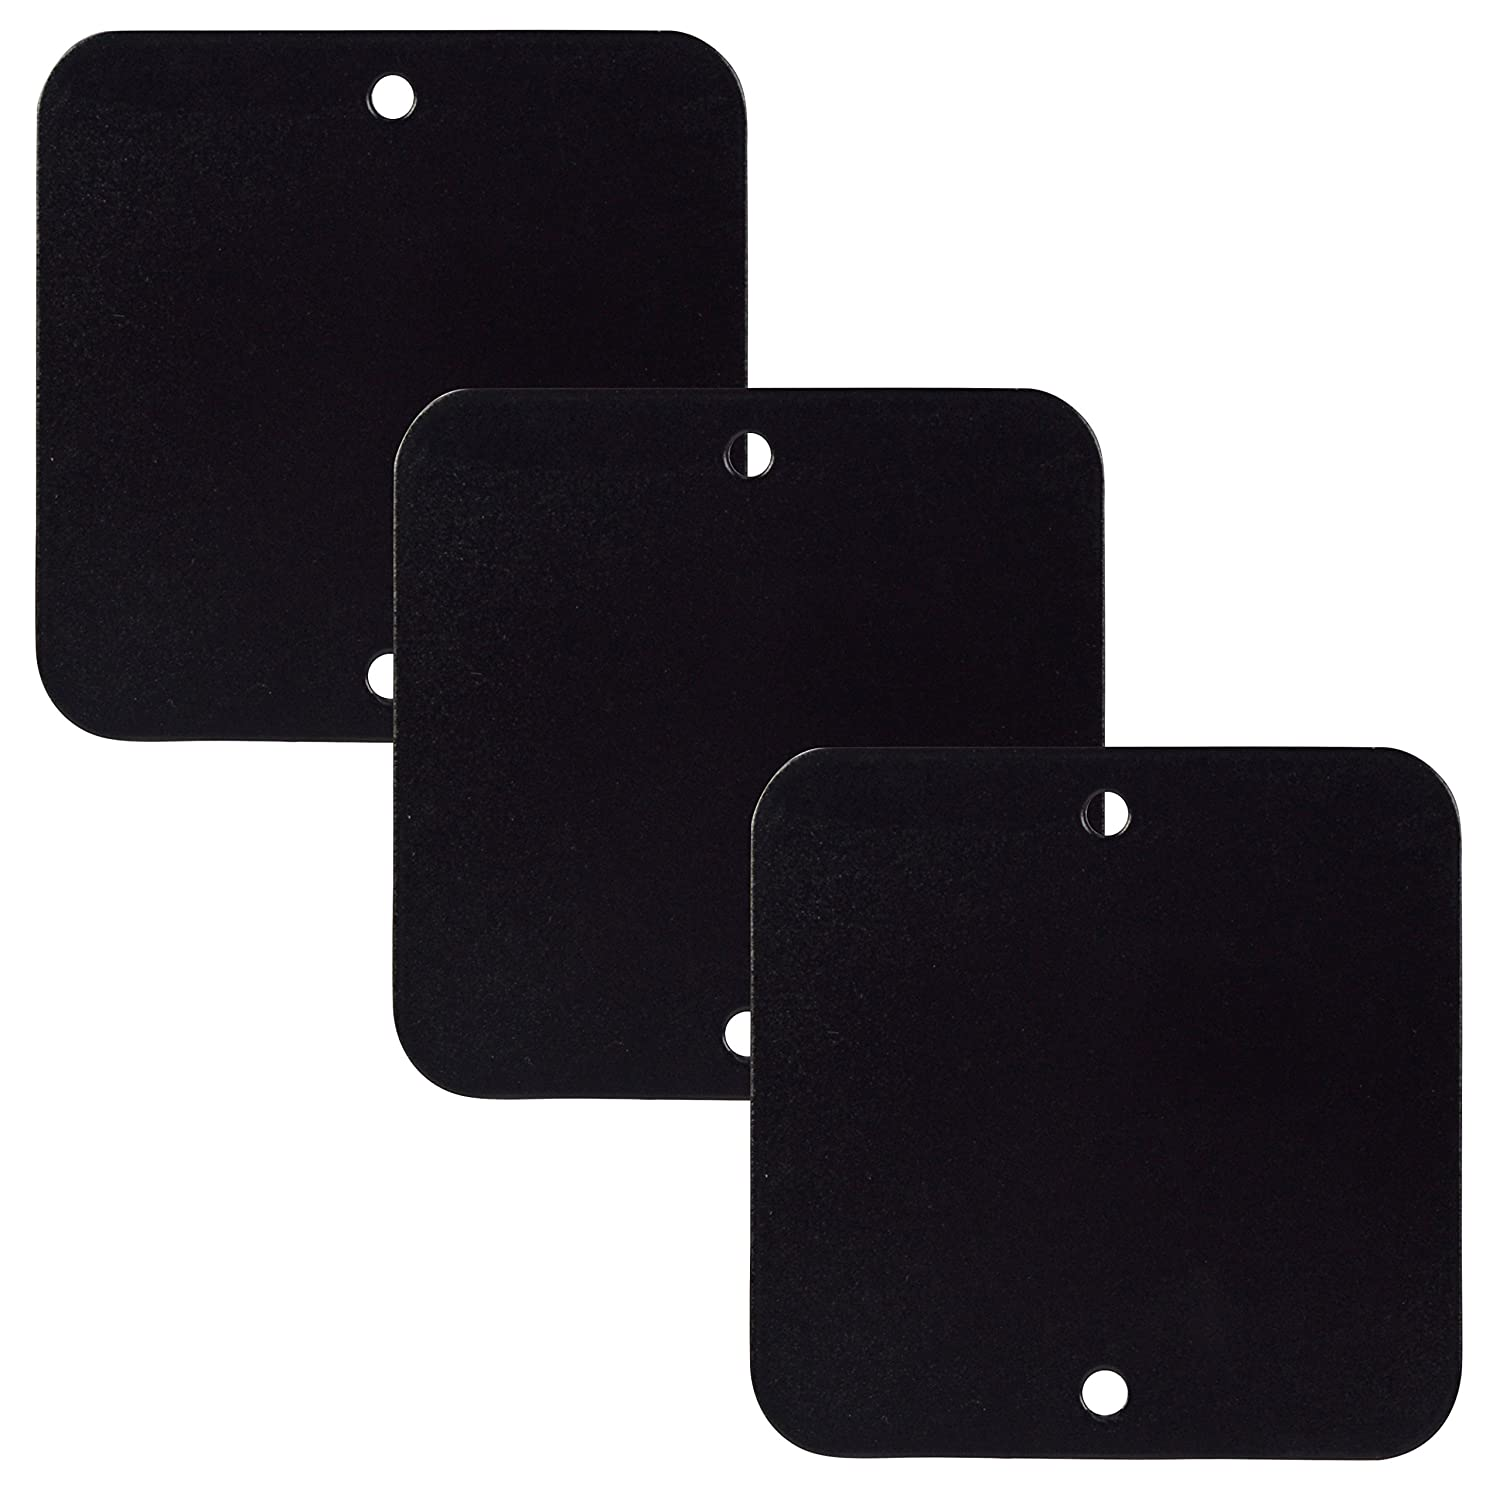 3 Extra Metal Plates for use with Phone Tagg Universal Magnetic Smartphone Holder - Black